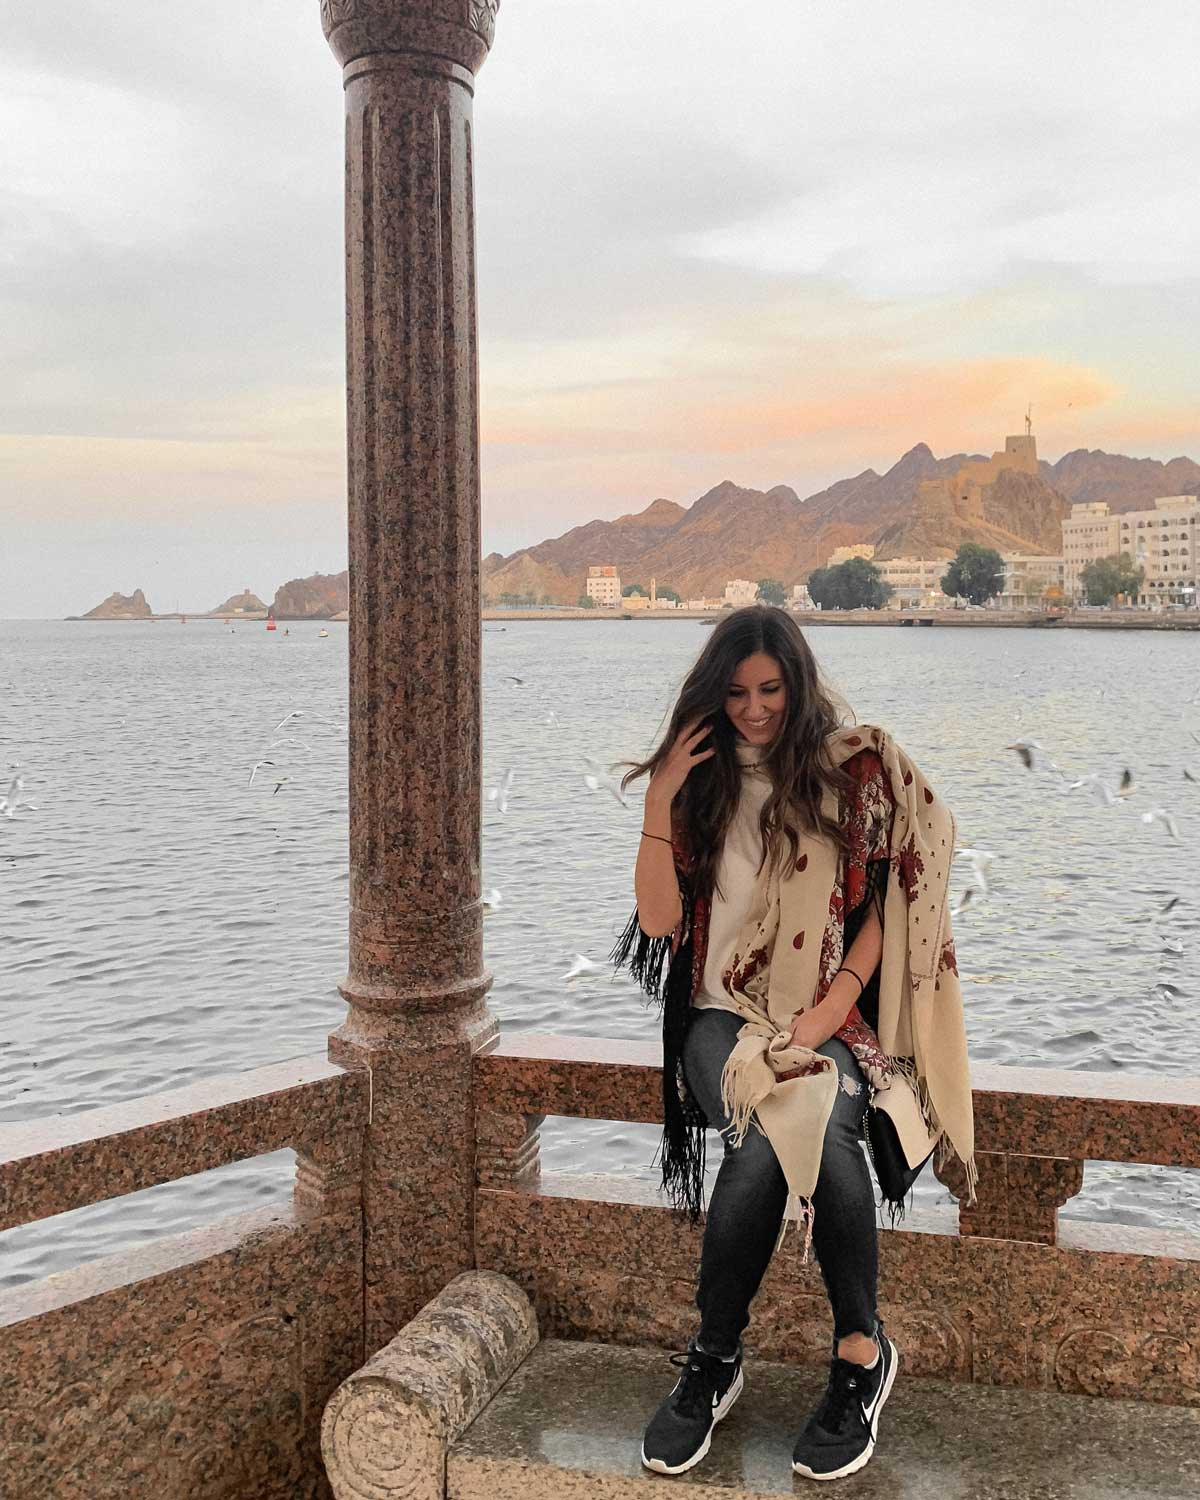 Rachel in Oman with her Pashmina